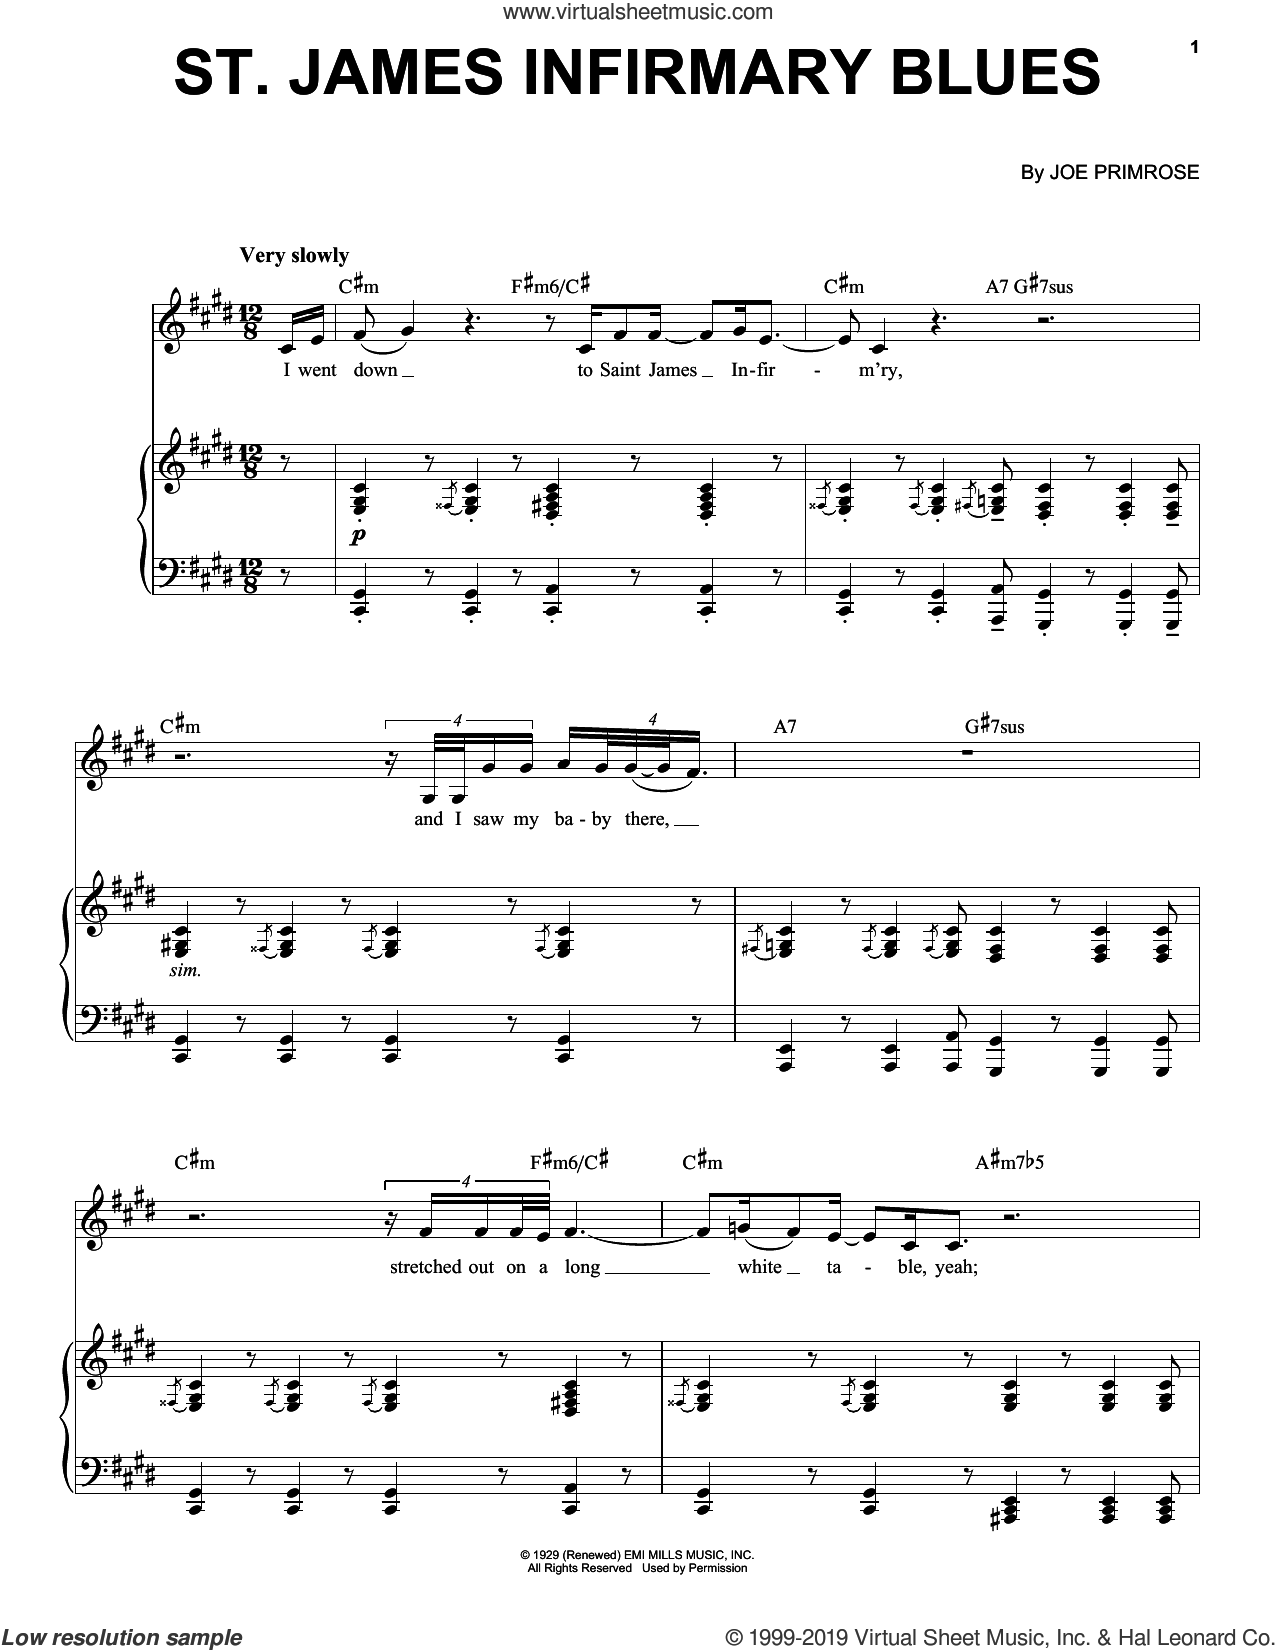 Saint James Infirmary Blues sheet music for voice, piano or guitar by Jon Batiste and Joe Primrose, intermediate skill level